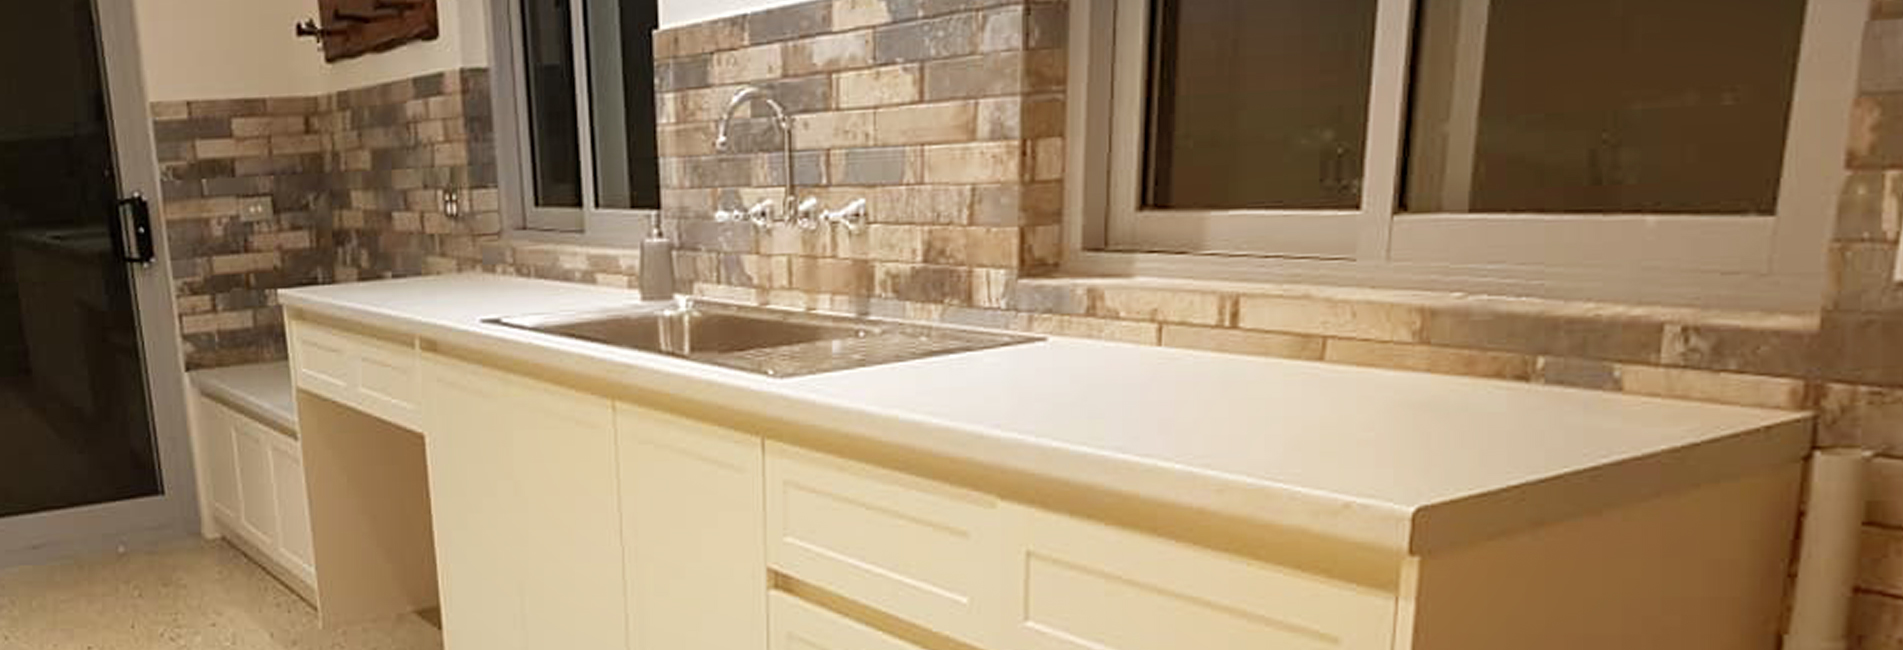 Kitchen Cabinets Australind, Kitchen Renovations Eaton, Bathroom Renovations Boyanup